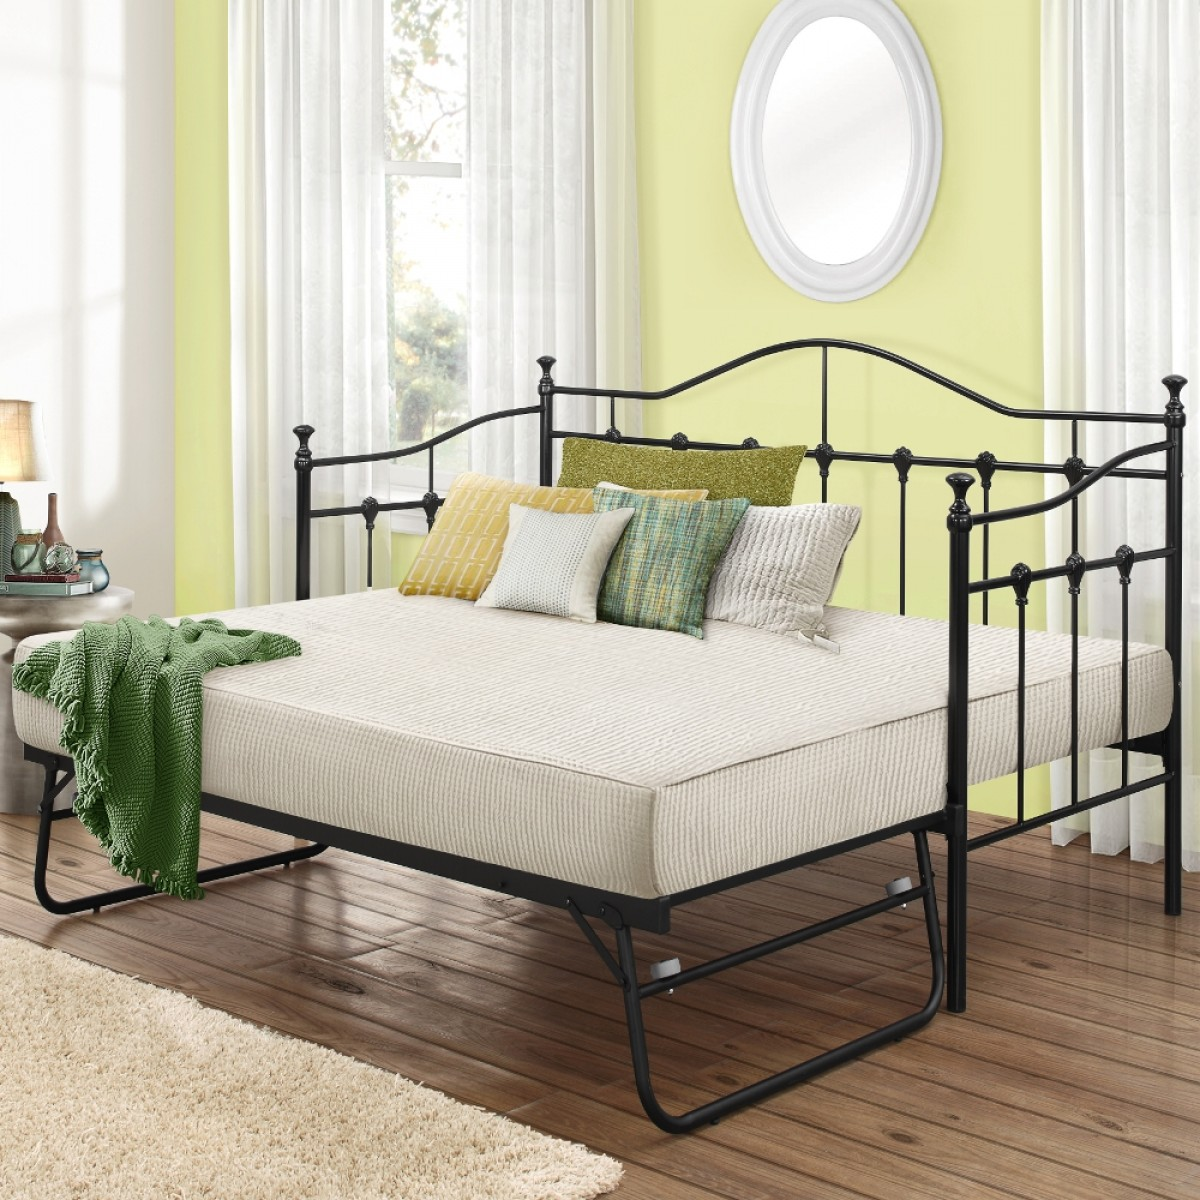 Torino Black Metal Guest Bed with Trundle